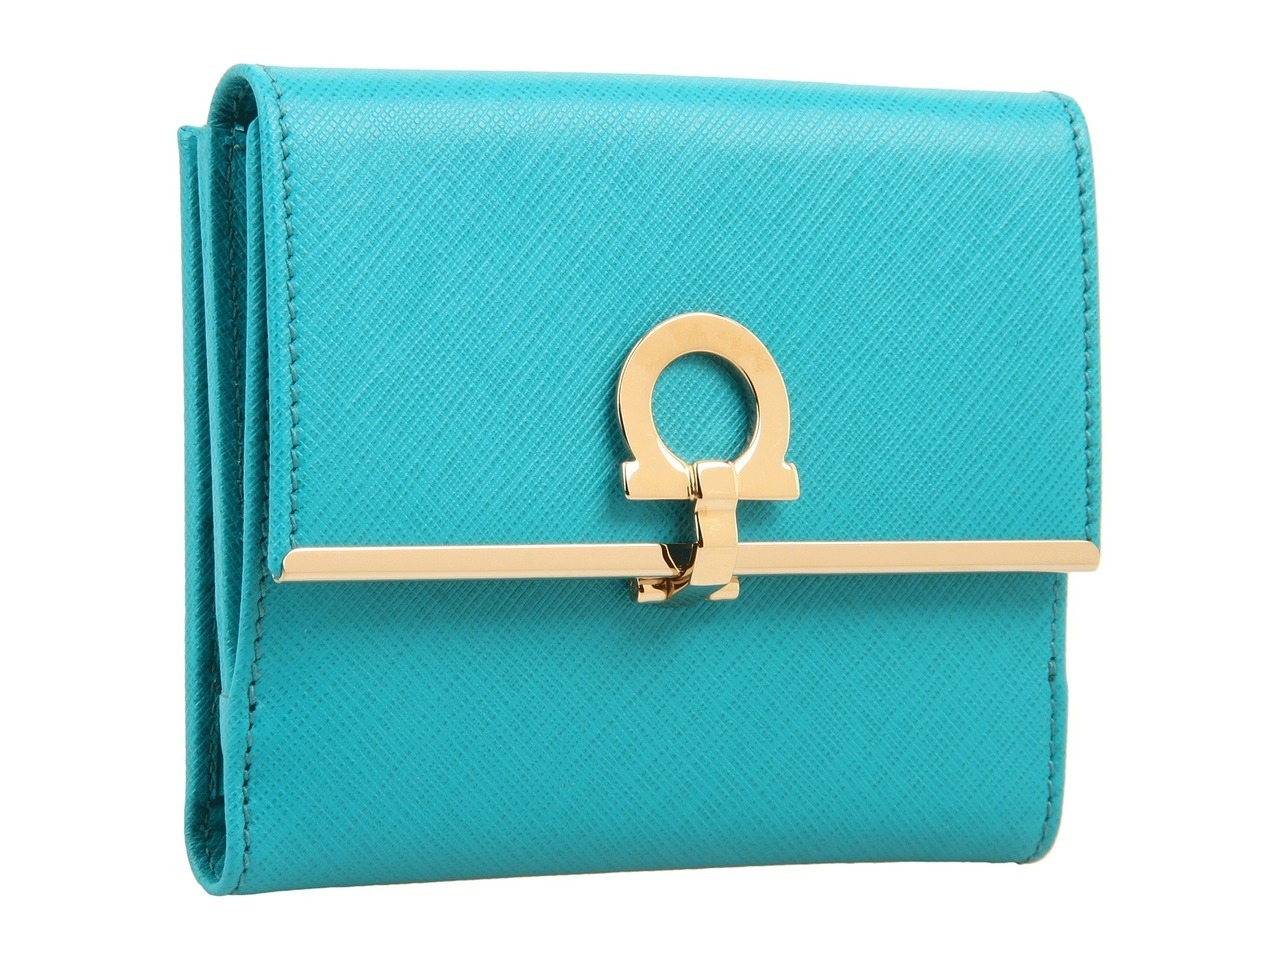 "mutexme:  Zappos has this beautiful Salvatore Ferragamo Icona French wallet on sale for $ 297 (Orig $ 425) You need to choose color ""Teal saffiano"" in order to view the price  Free shipping both ways   BUY THE WALLET. have no money to put in…"